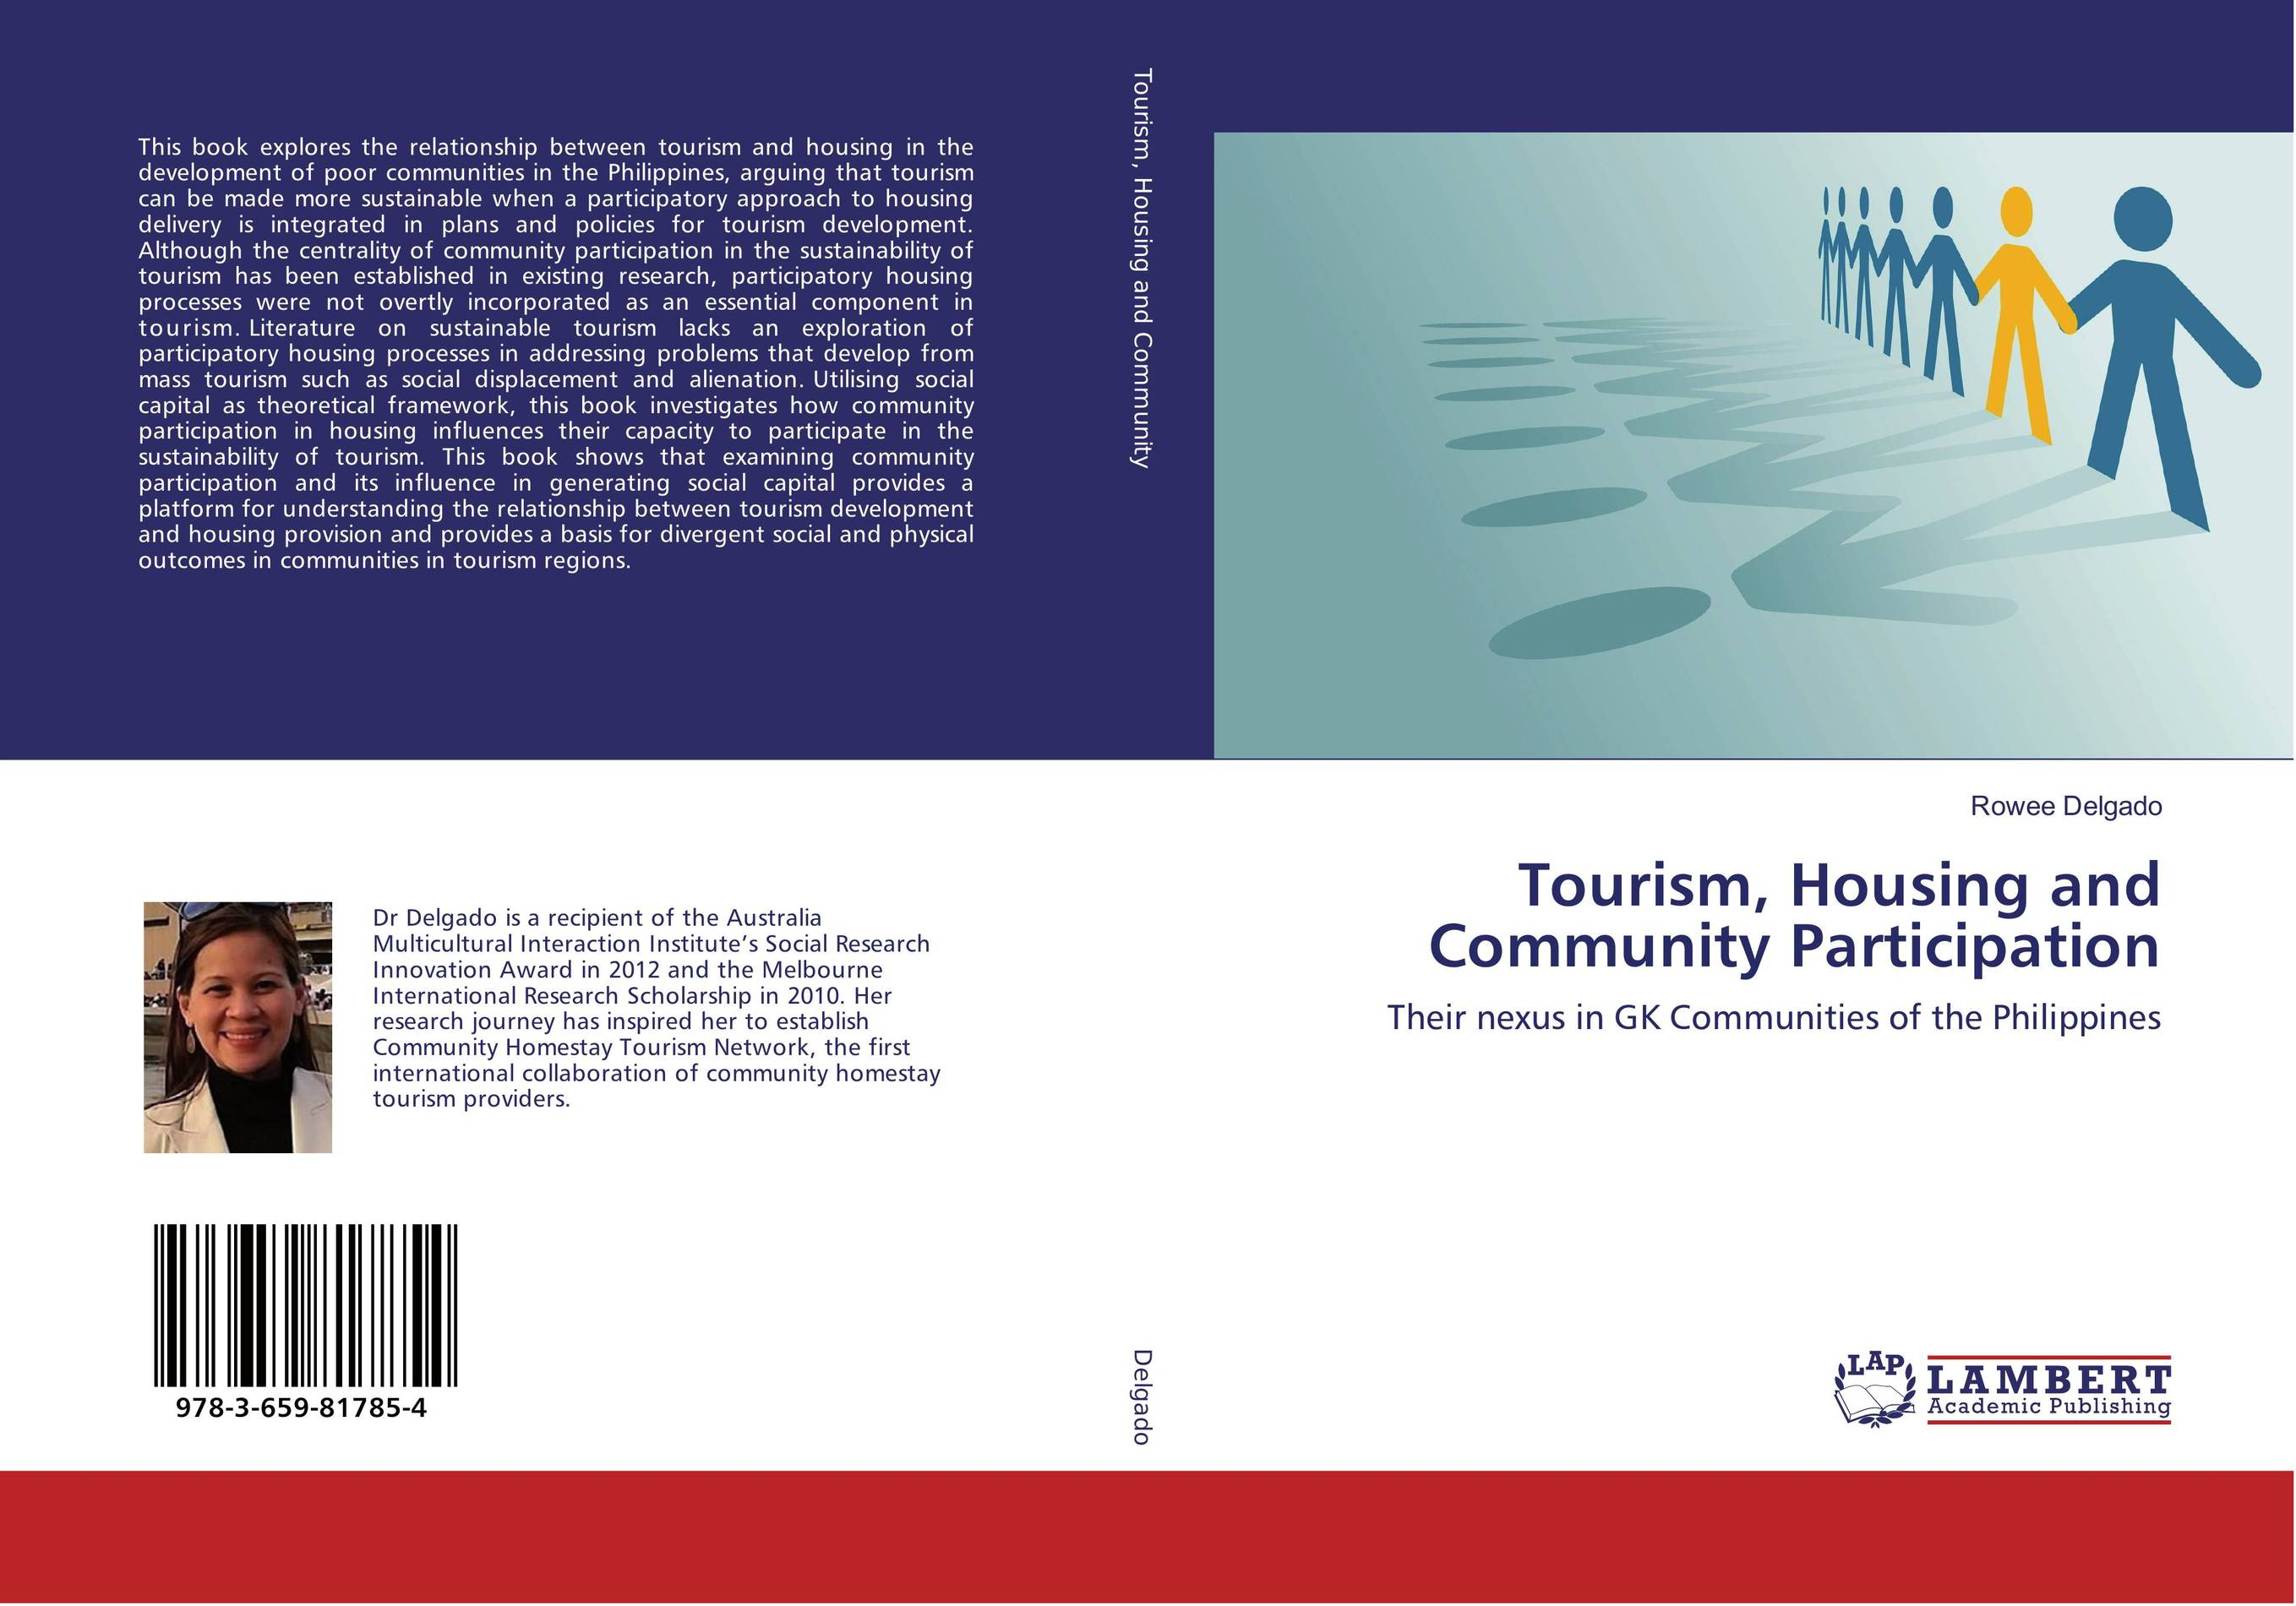 Tourism, Housing and Community Participation